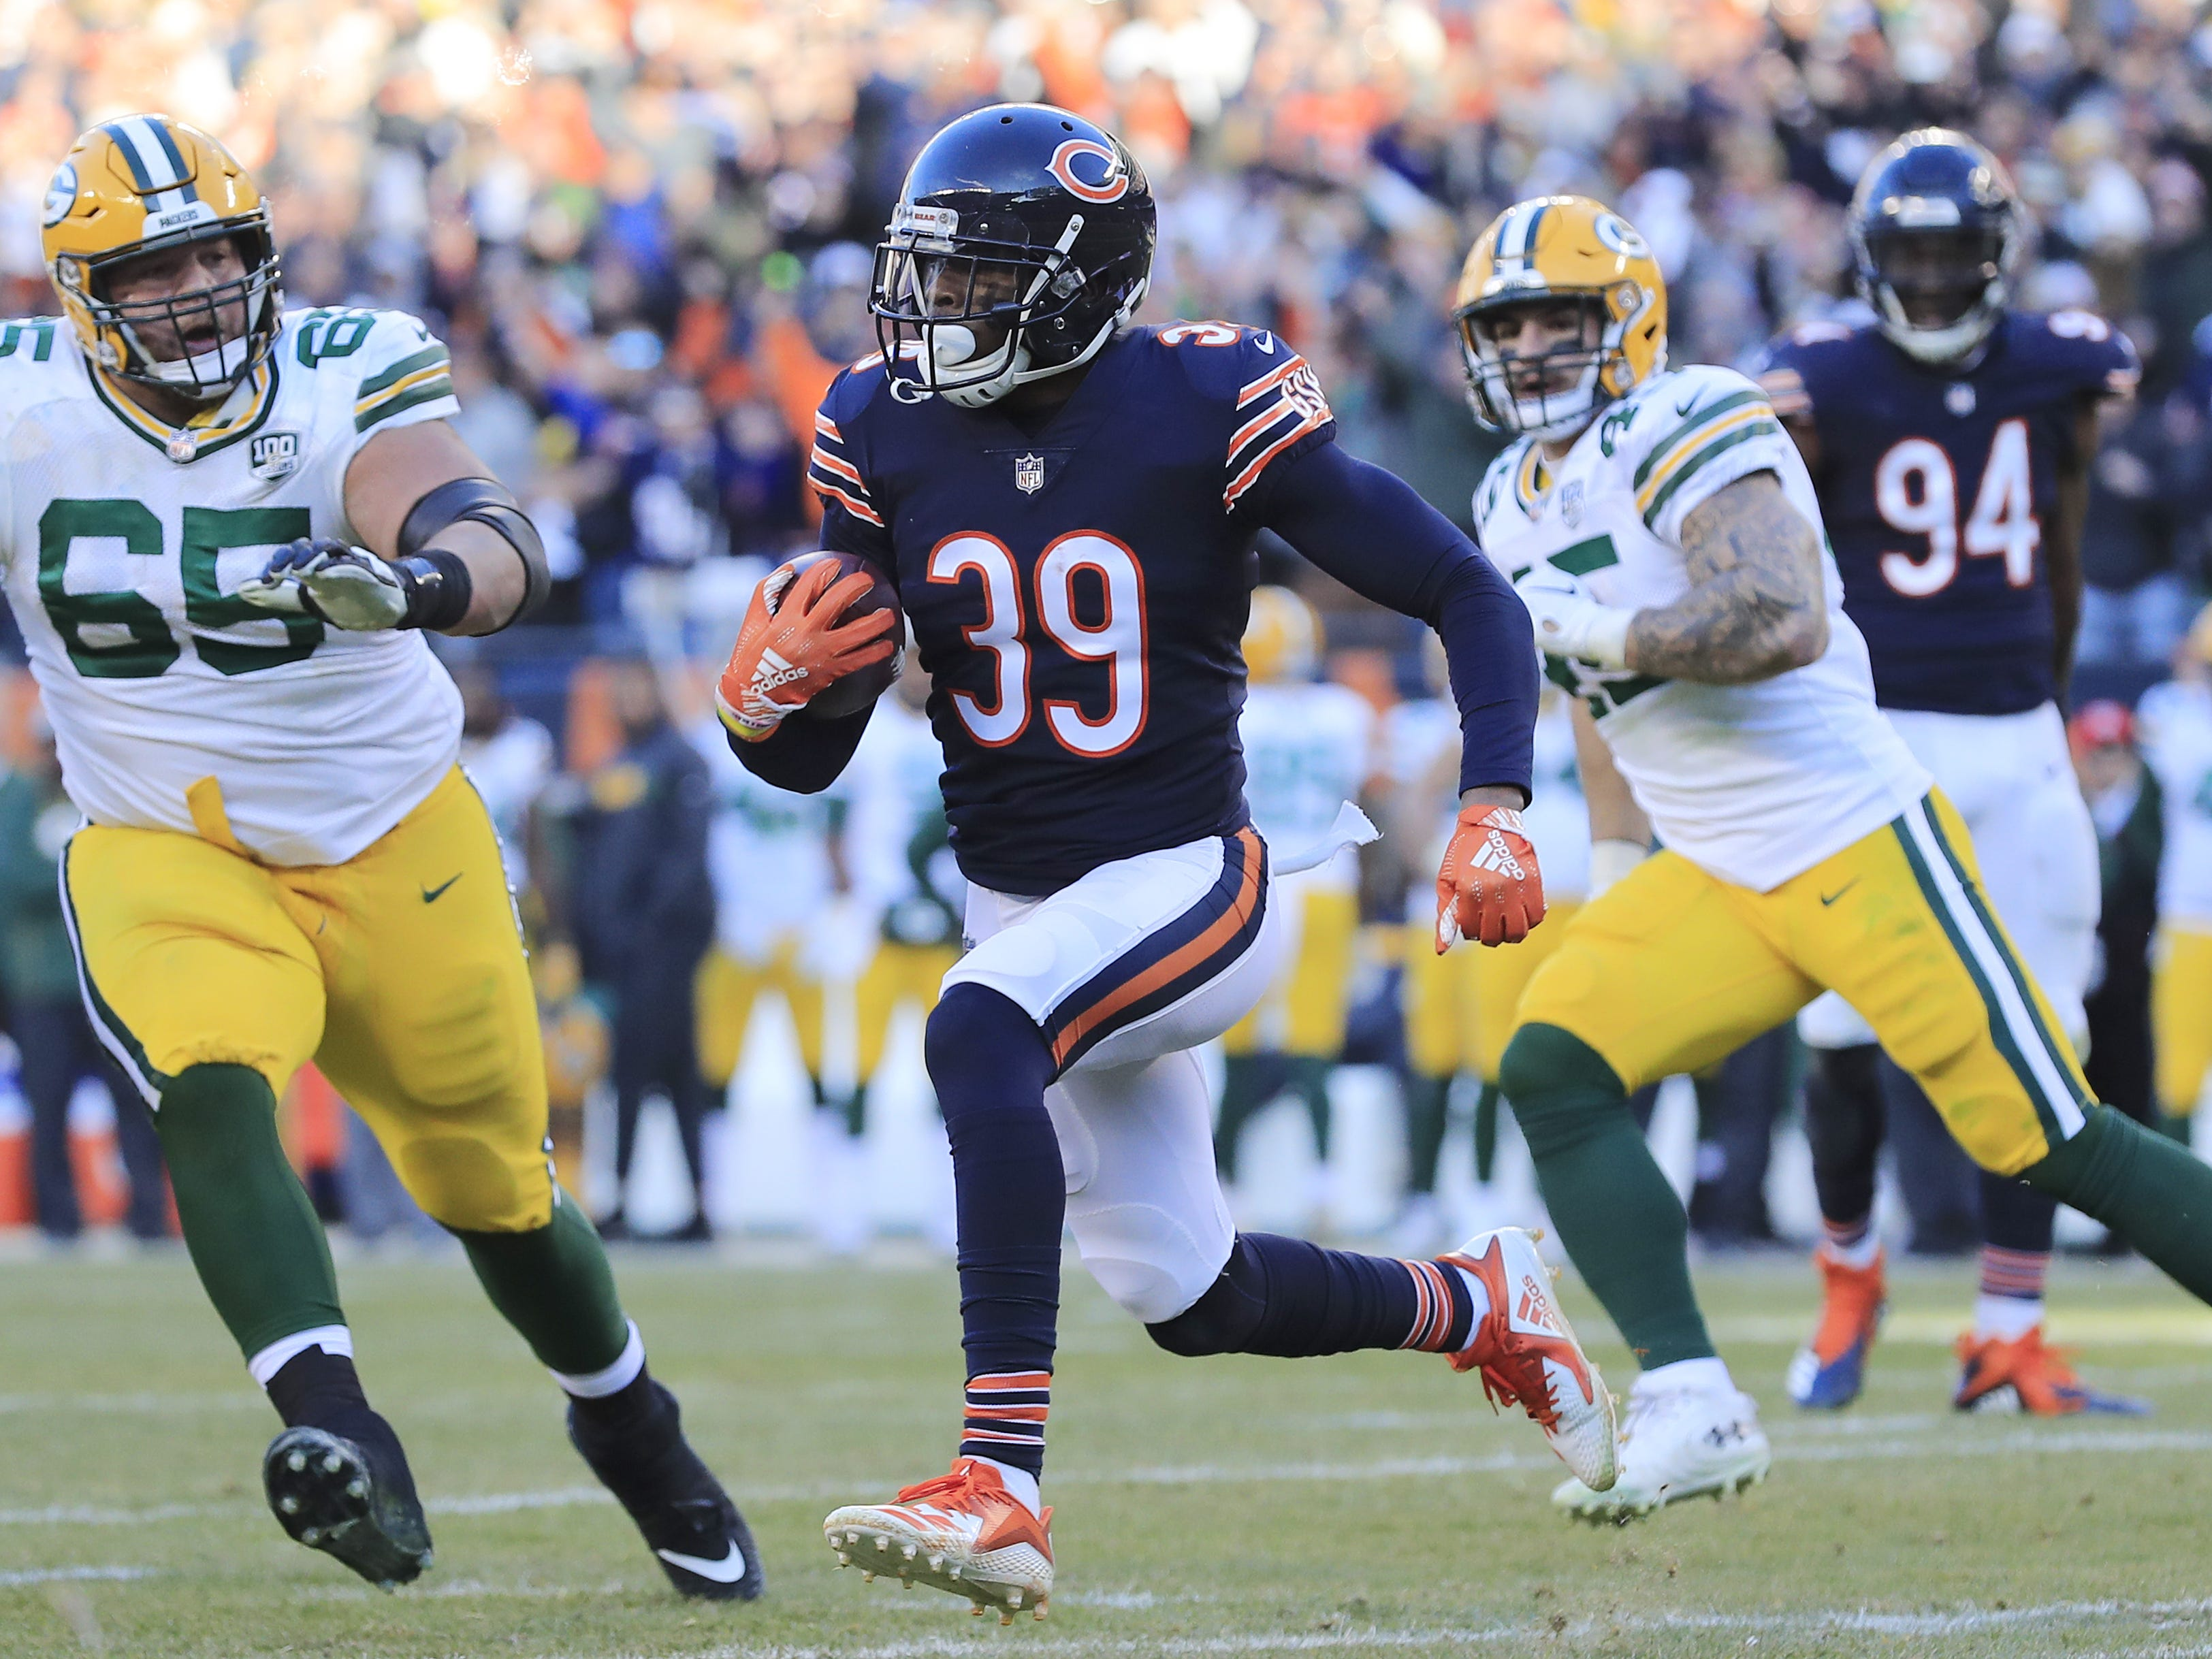 Chicago Bears free safety Eddie Jackson (39) runs after an interception against the Green Bay Packers in the fourth quarter at Soldier Field on Sunday, December 16, 2018 in Chicago, Illinois. Adam Wesley/USA TODAY NETWORK-Wis